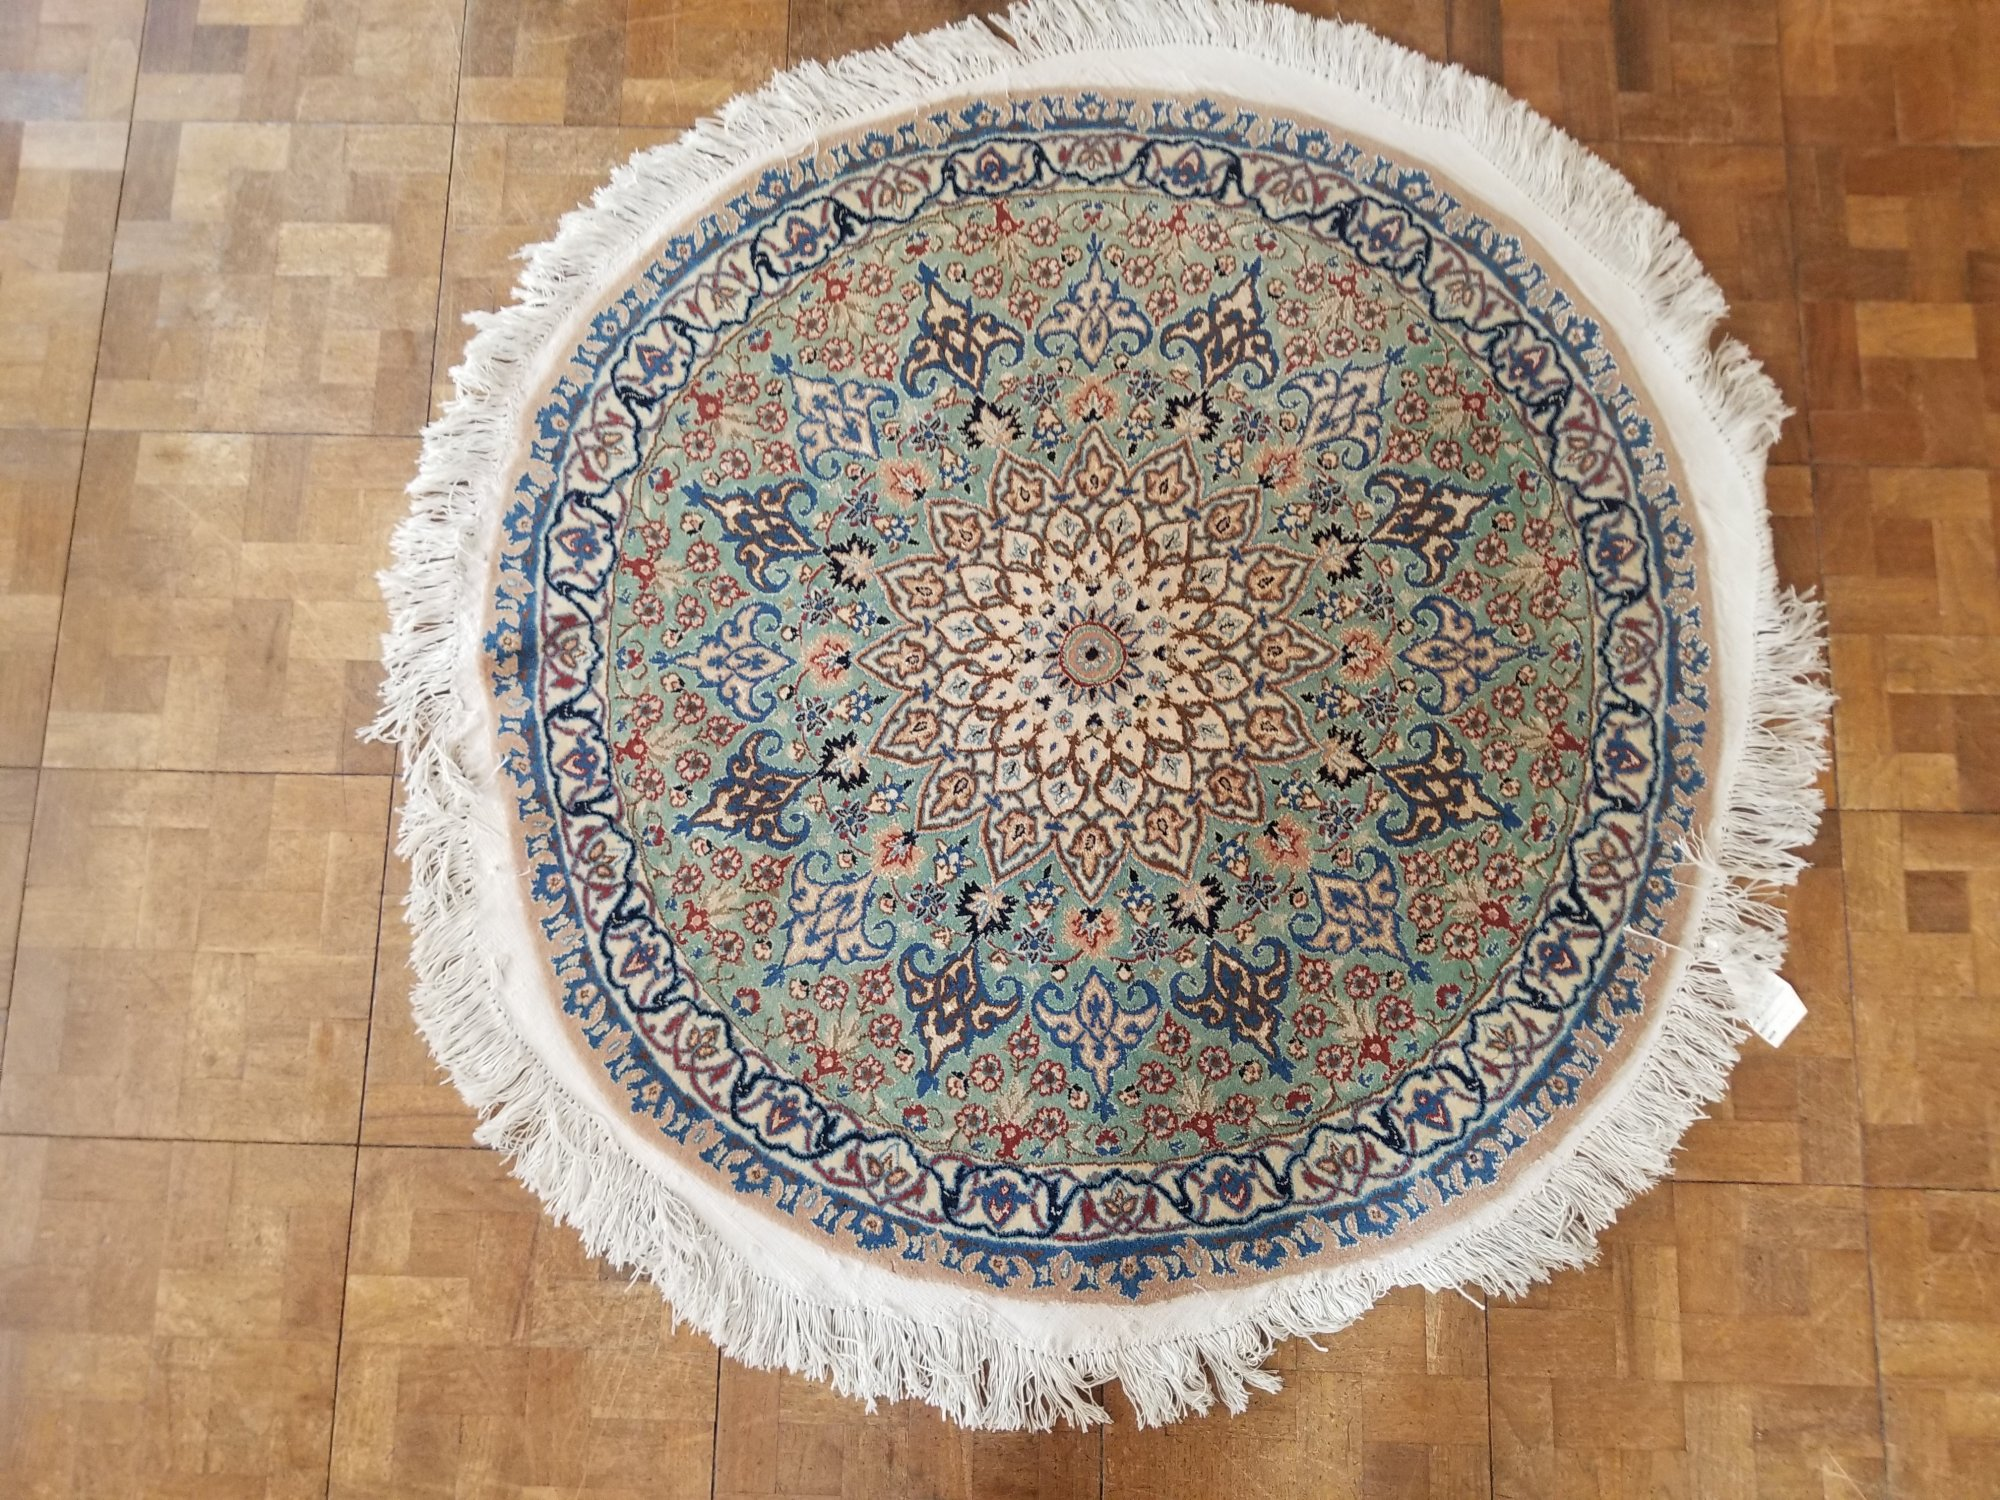 3'6 X 3'6 Persian Nain circa 1970 Mint green field with a cream colored medallion and thin border accented with many other colors like light blue blue brown and rust    HTX